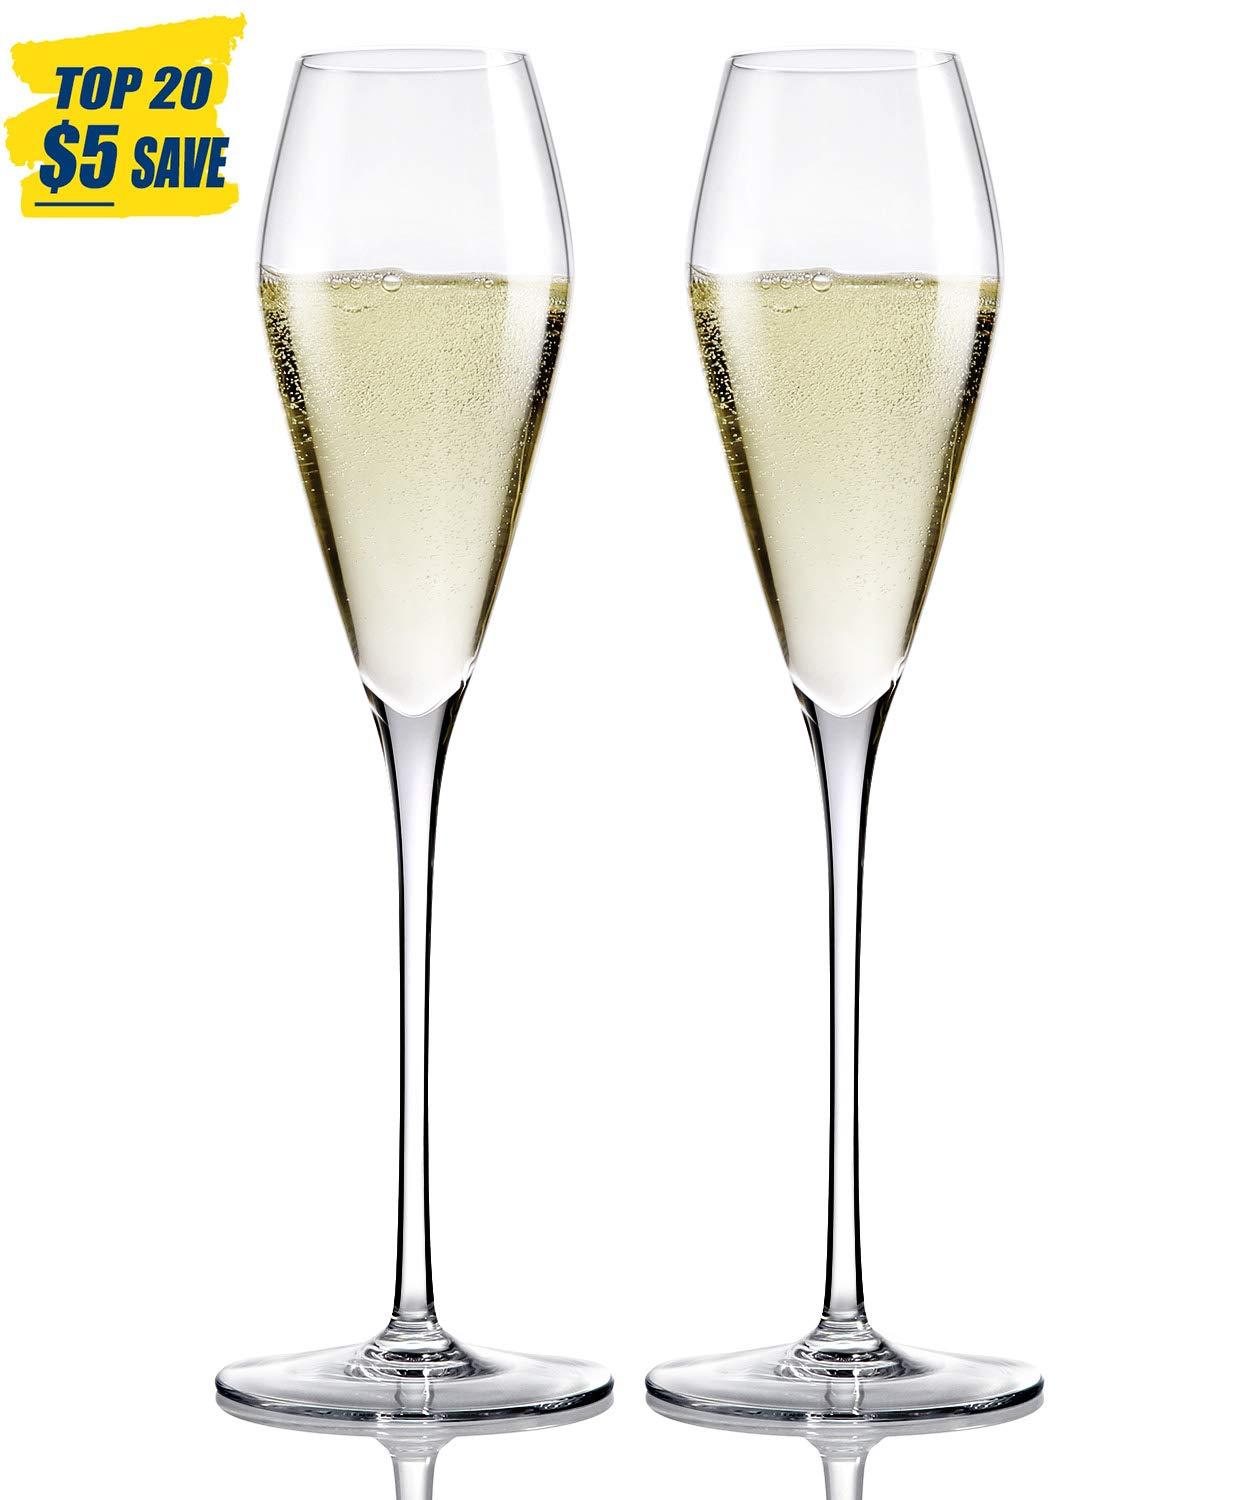 Champagne Flutes Glasses-Hand Blown Crystal Champagne Glasses Made from 100% Lead Free Premium Crystal Glass, Perfect for Any Occasion,Great Gift, 10.6'', 8.8 Oz, Set of 2, Clear